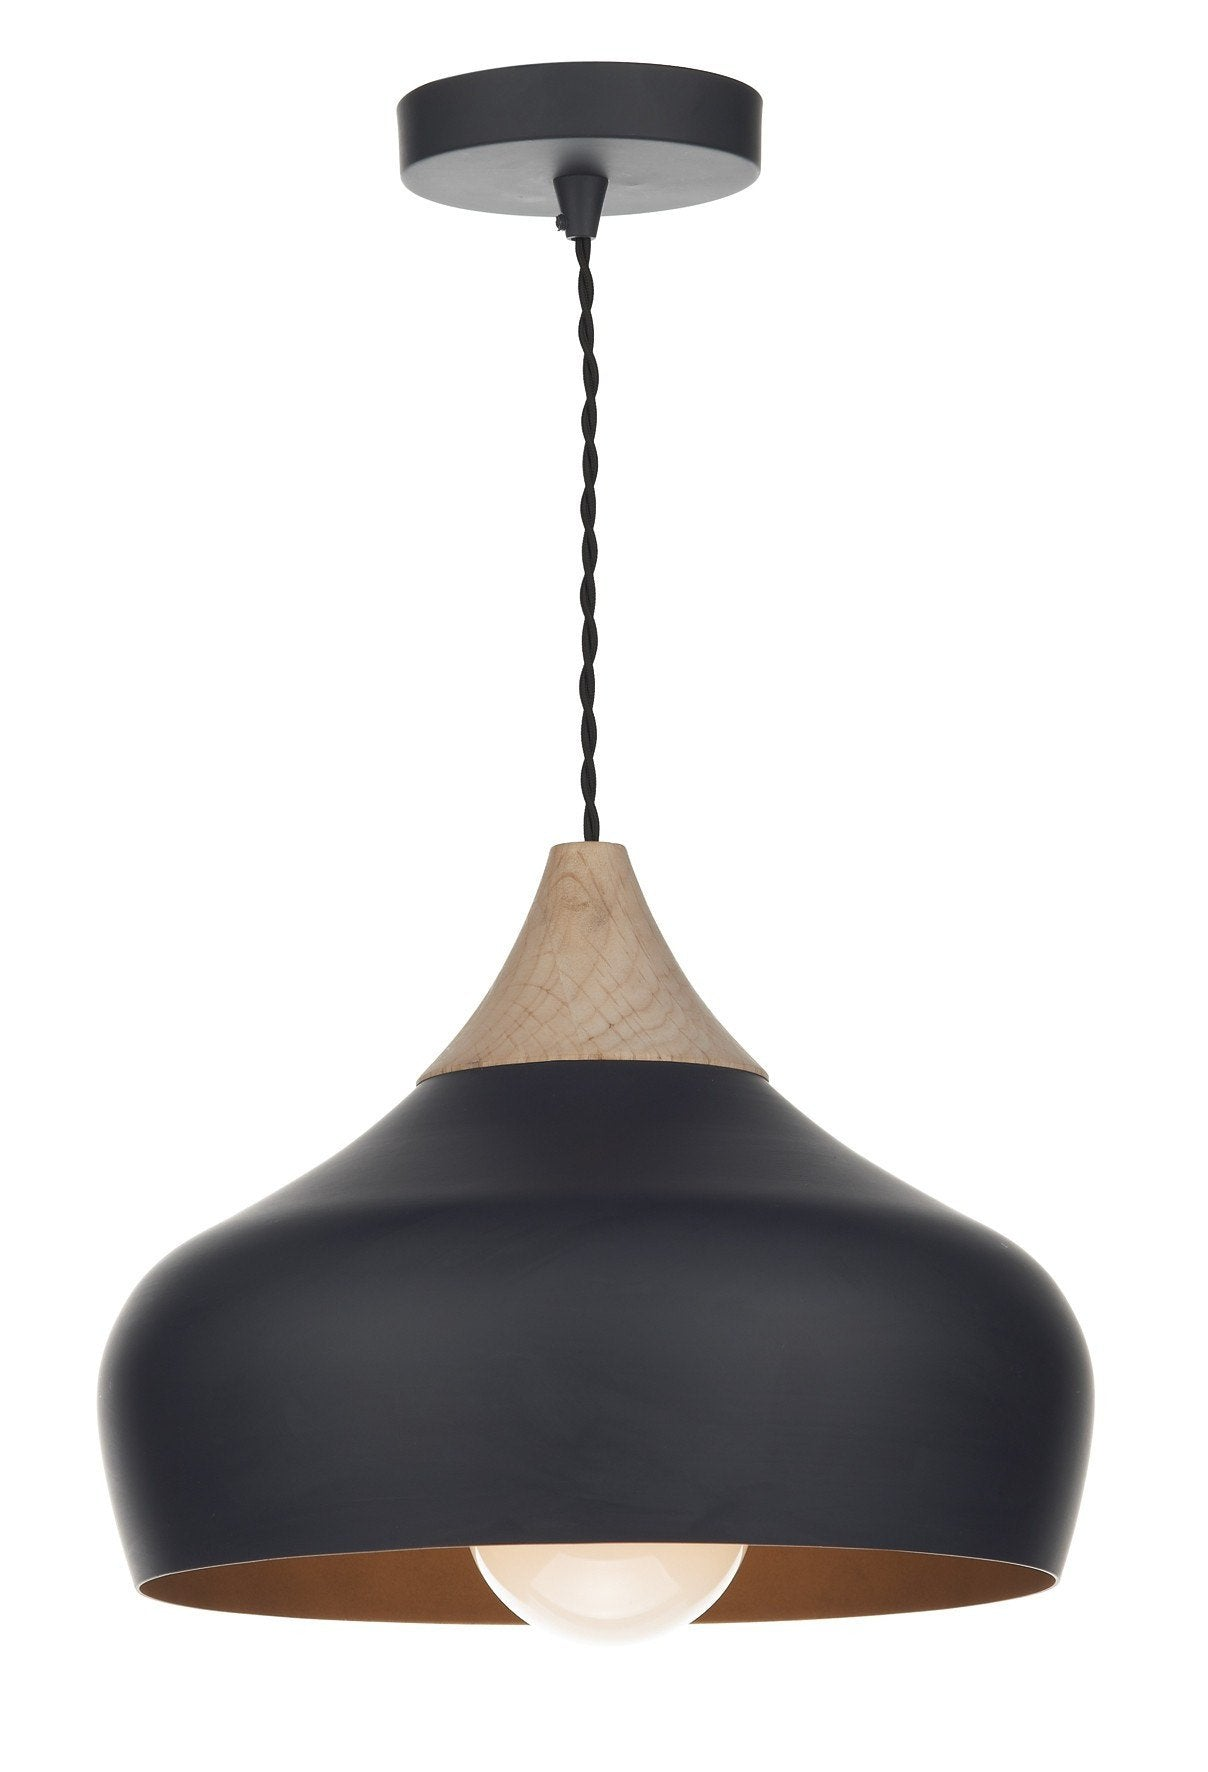 Gaucho Black Ceiling Light - London Lighting - 1